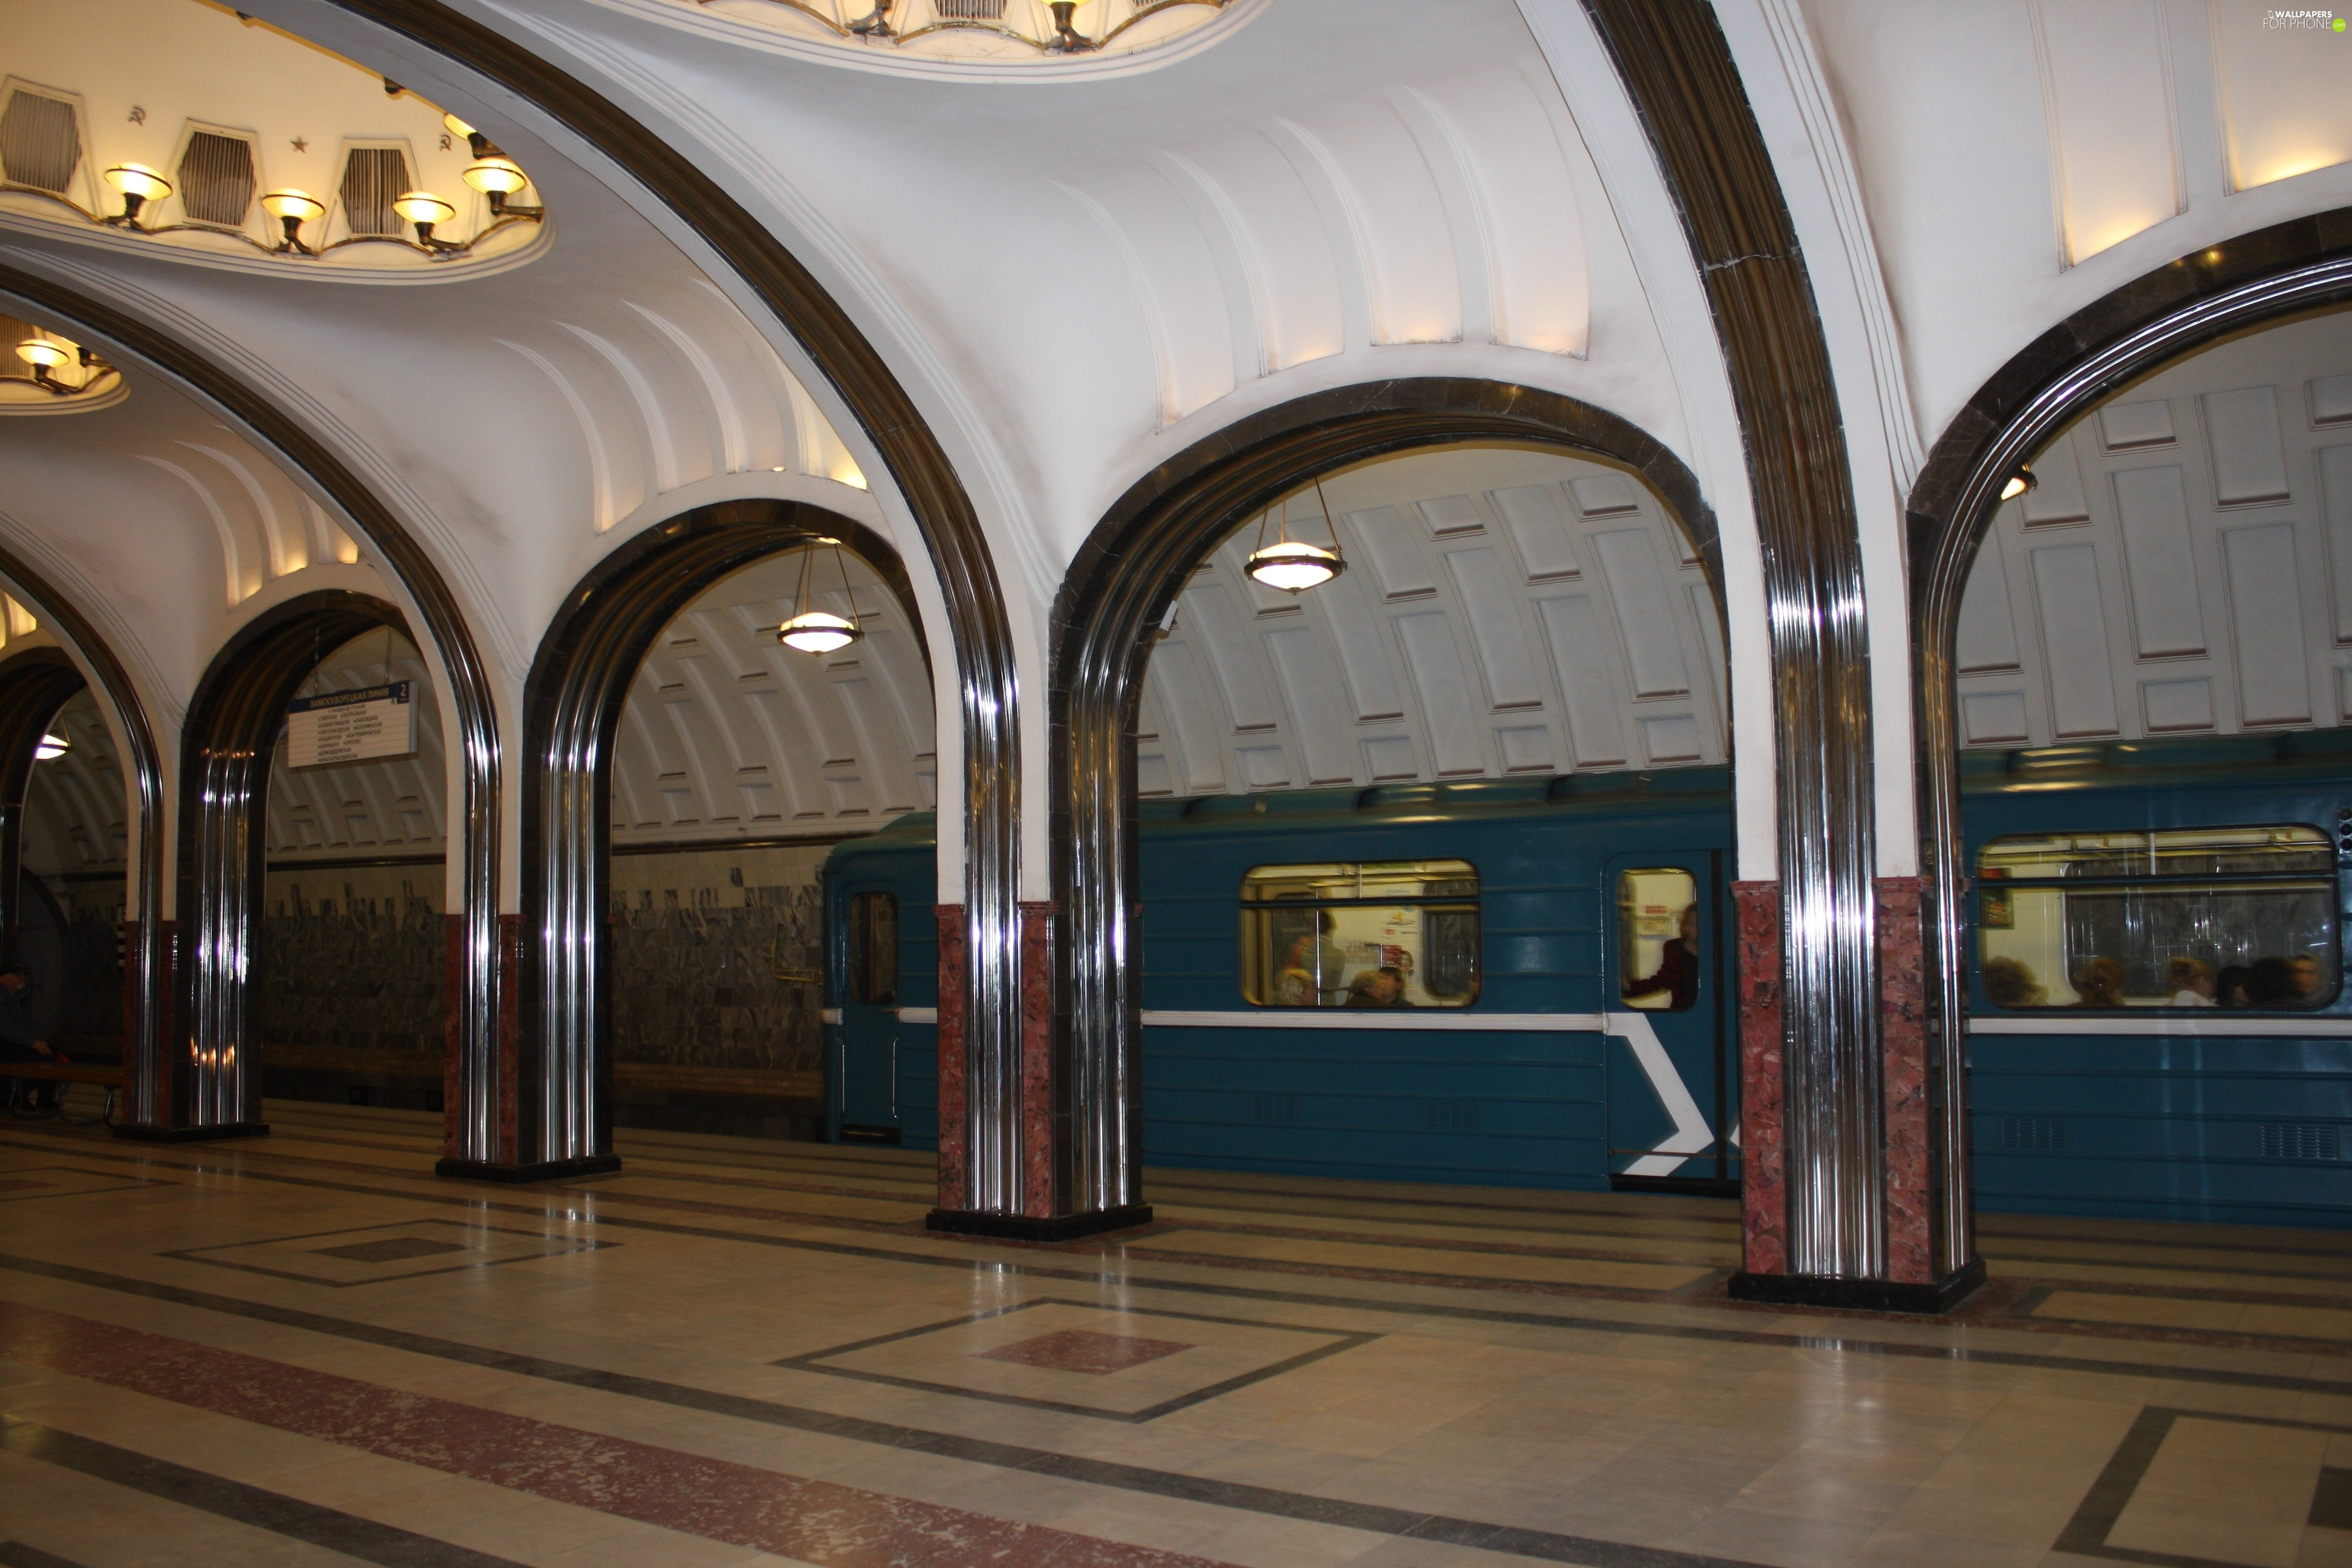 Russia, Station Mayakovsky, metro, Moscow